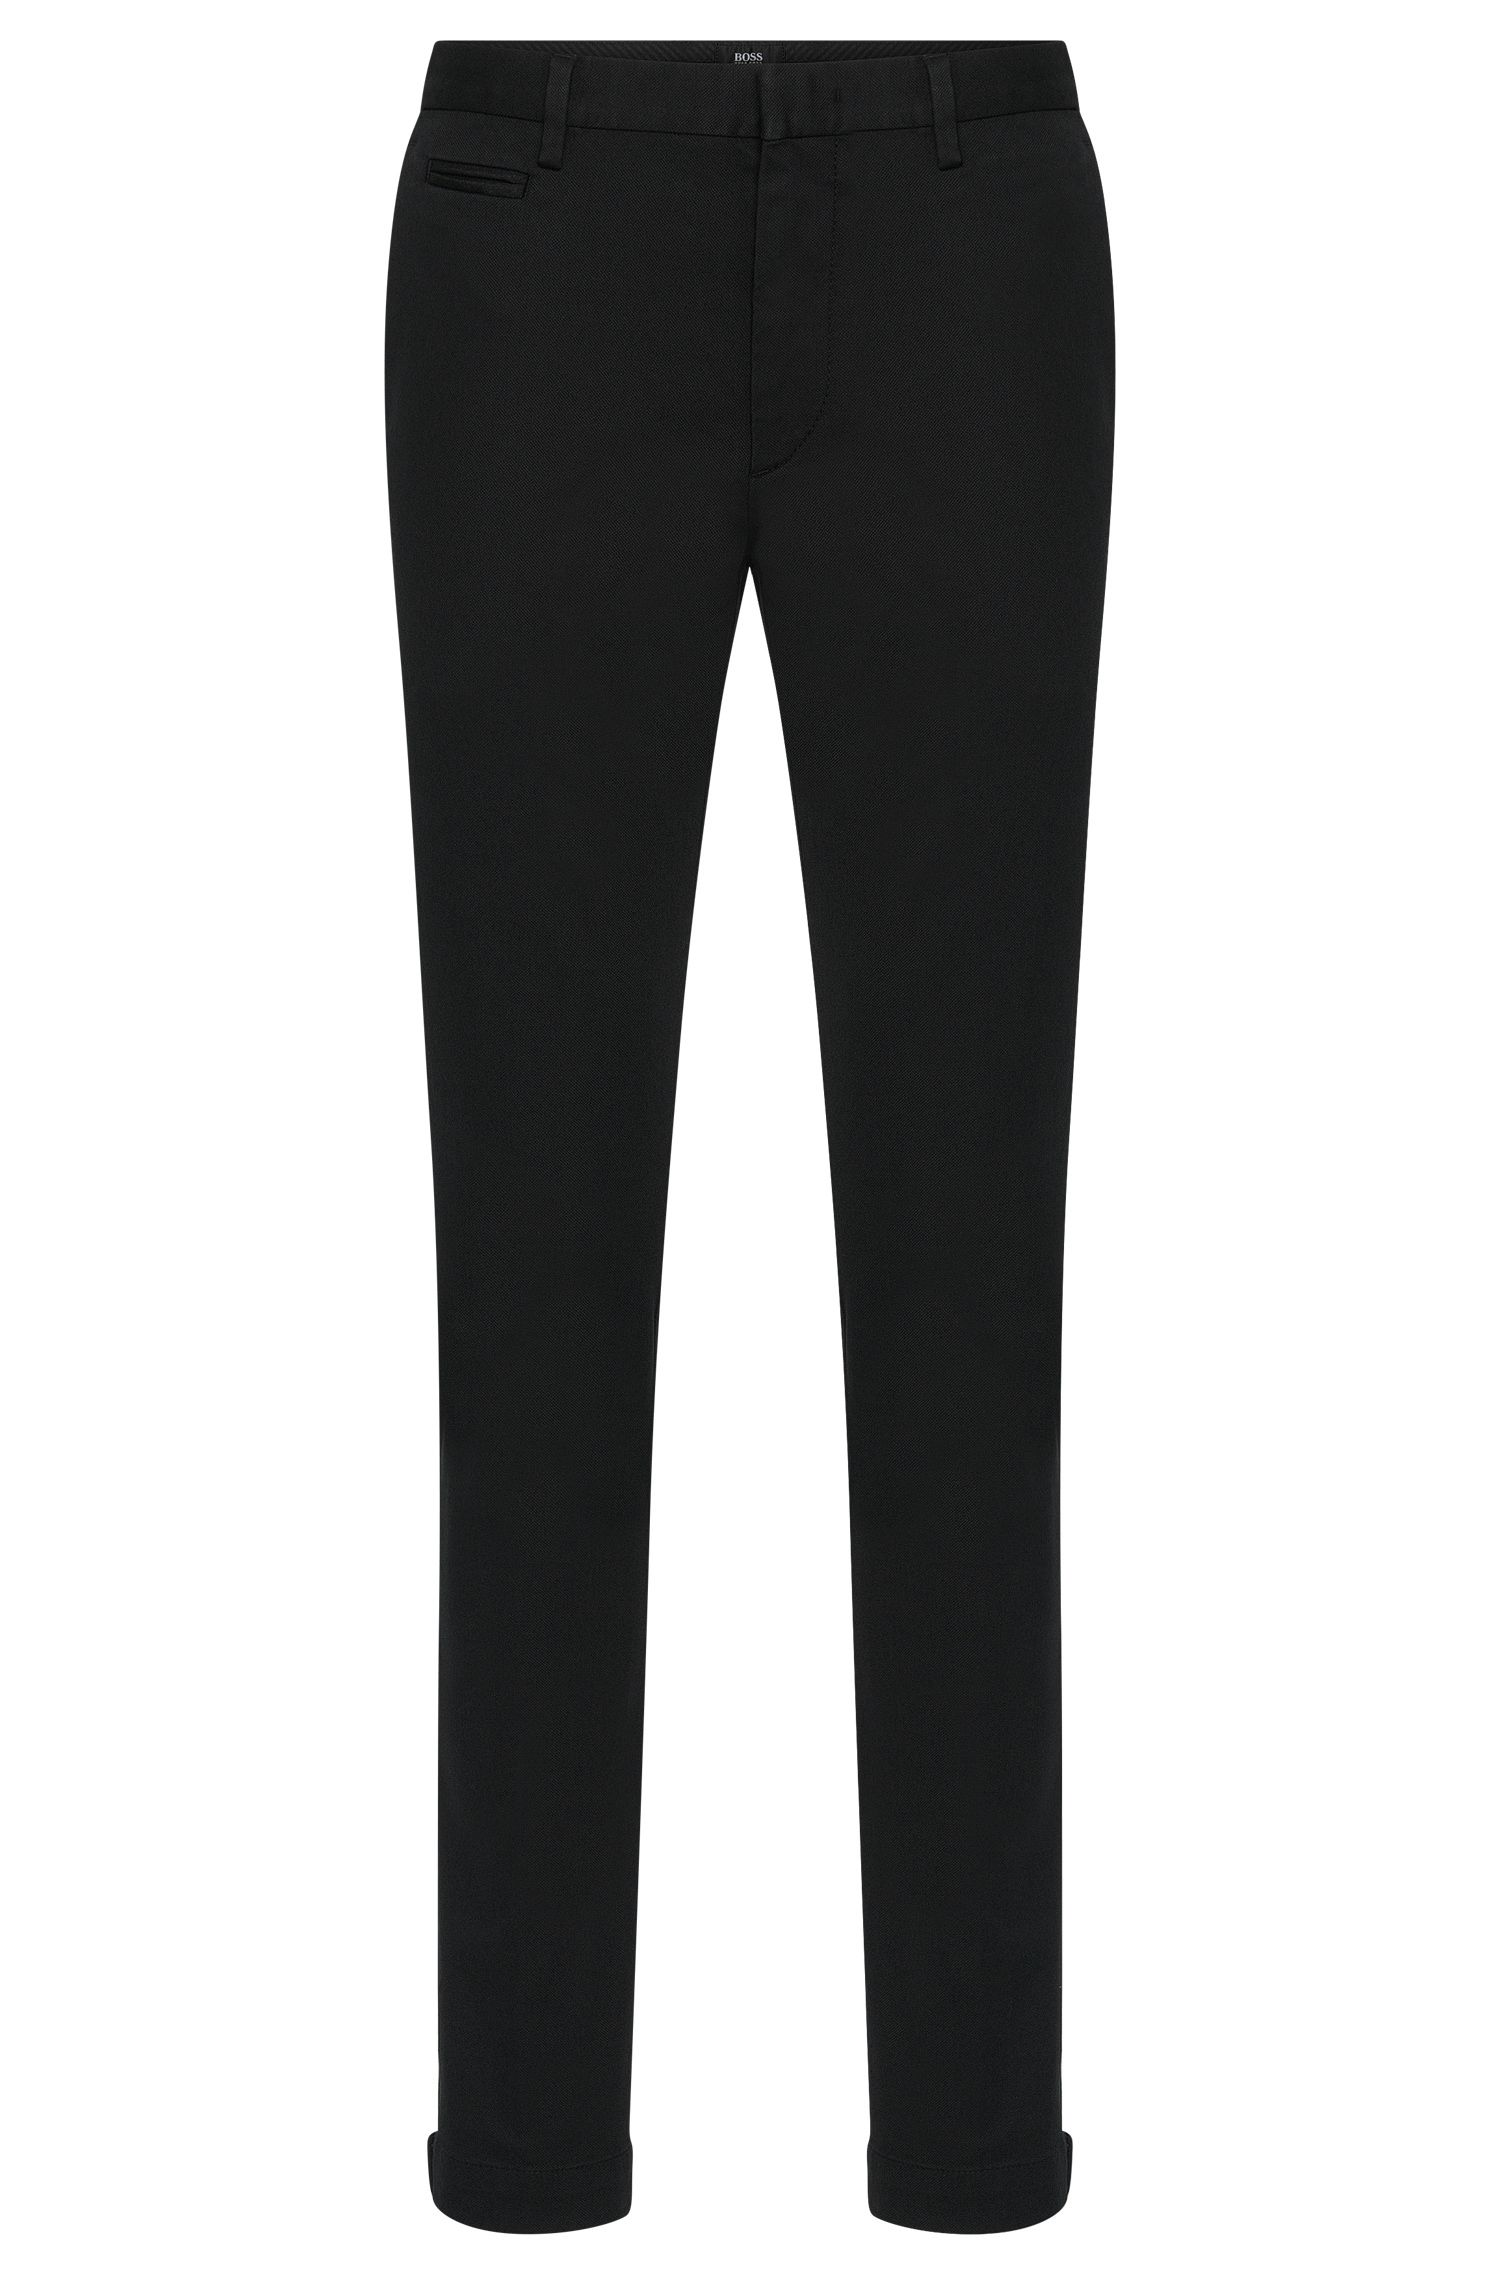 'Kaito-W' | Extra Slim Fit, Stretch Cotton Adjustable Cuff Pants